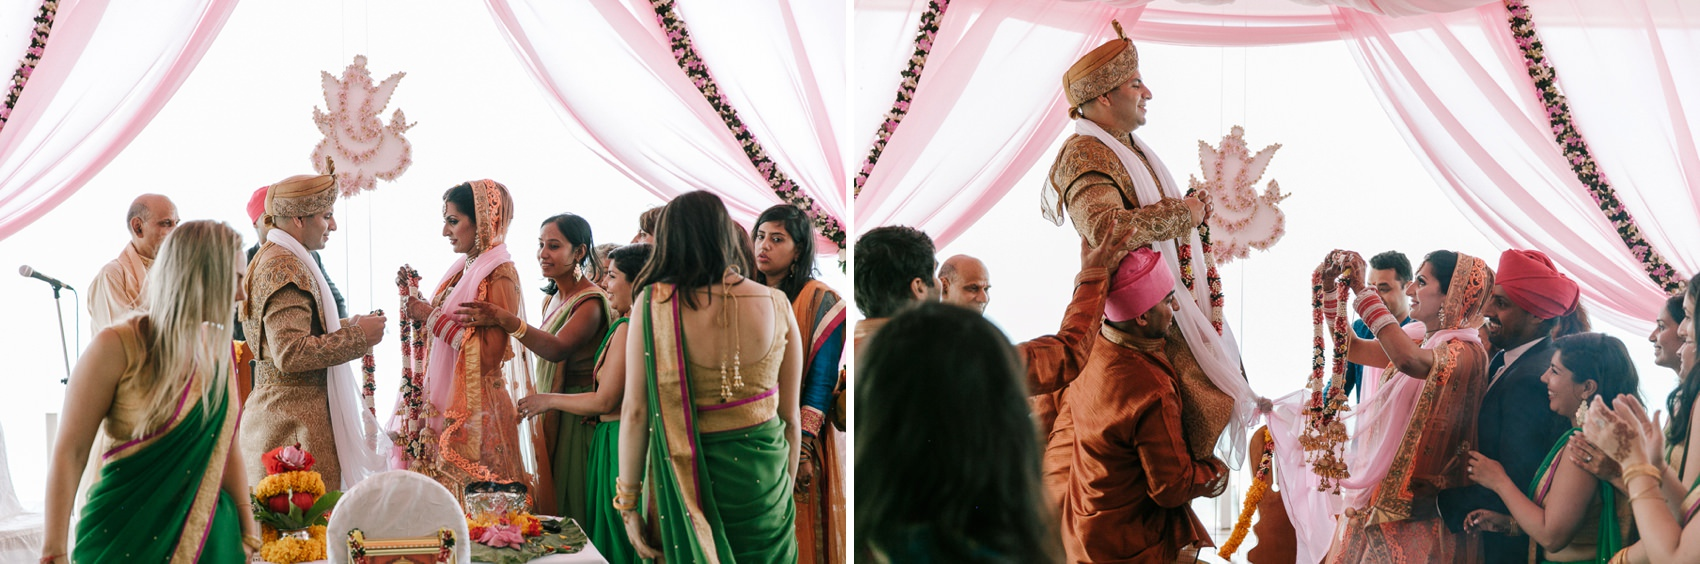 Indian-Wedding-Photography-Maala-Rohan_0237